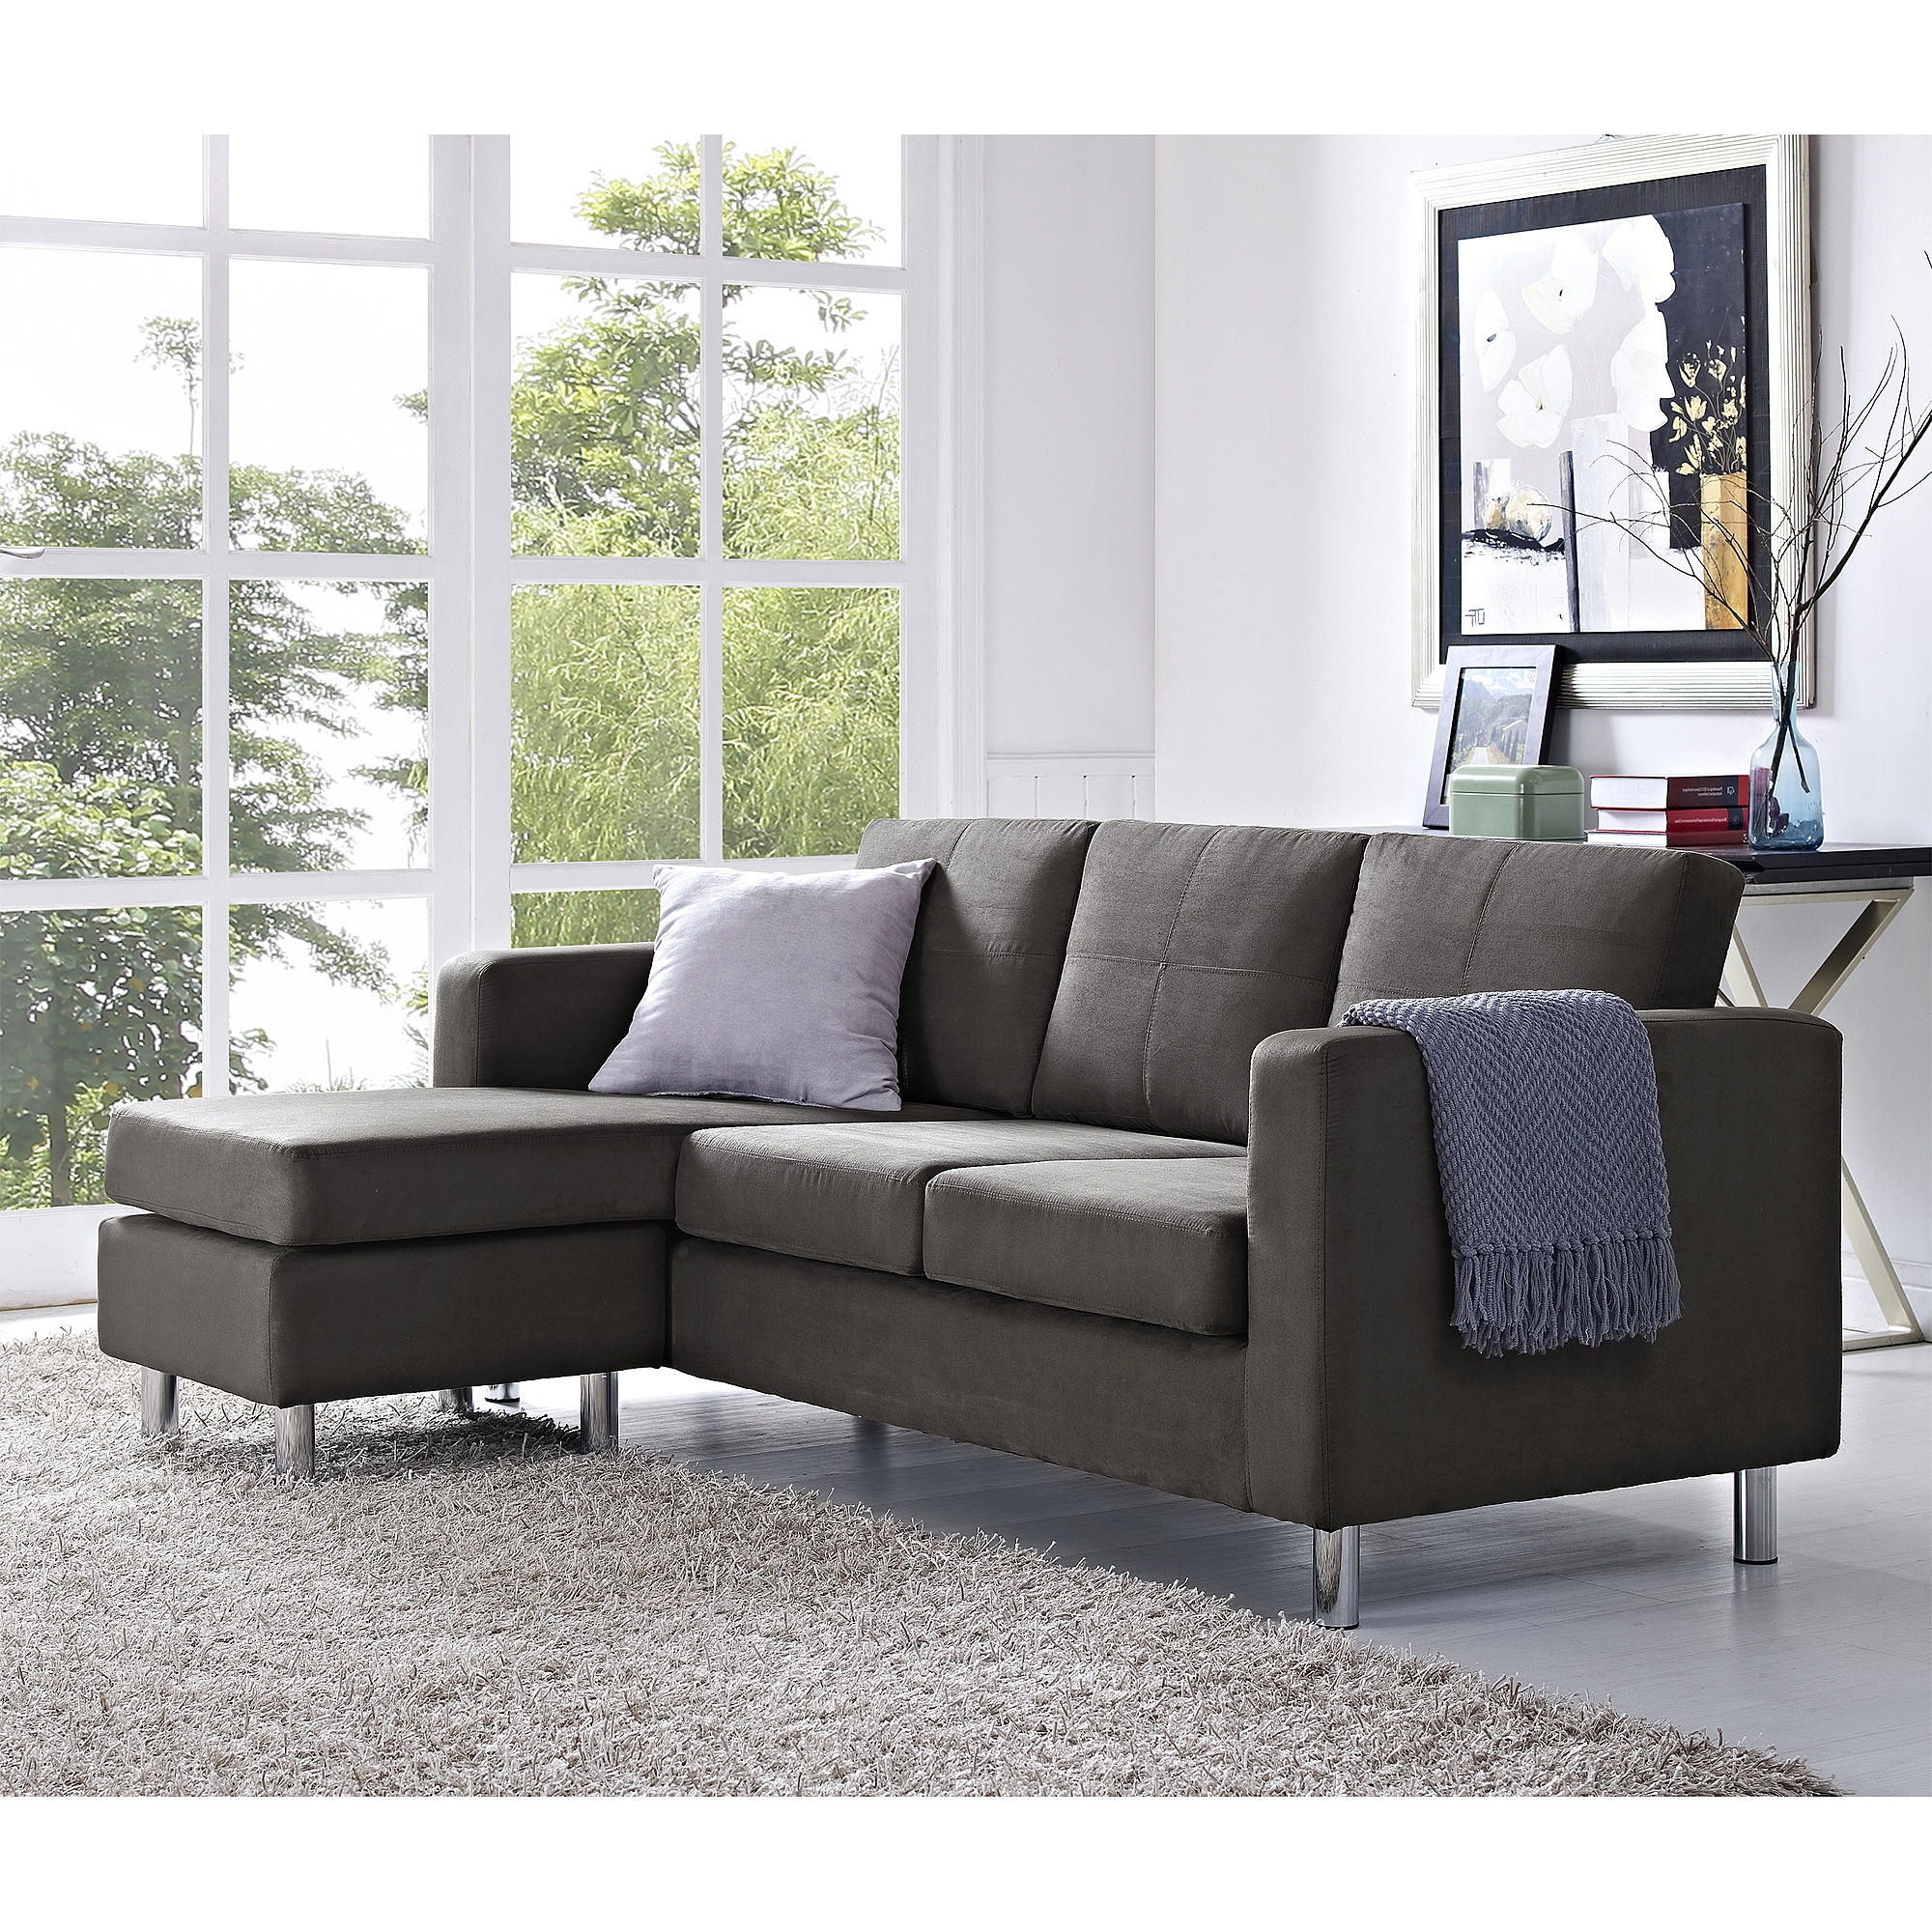 small es configurable sectional sofa black maverick bonded leather 15 collection of durable ideas